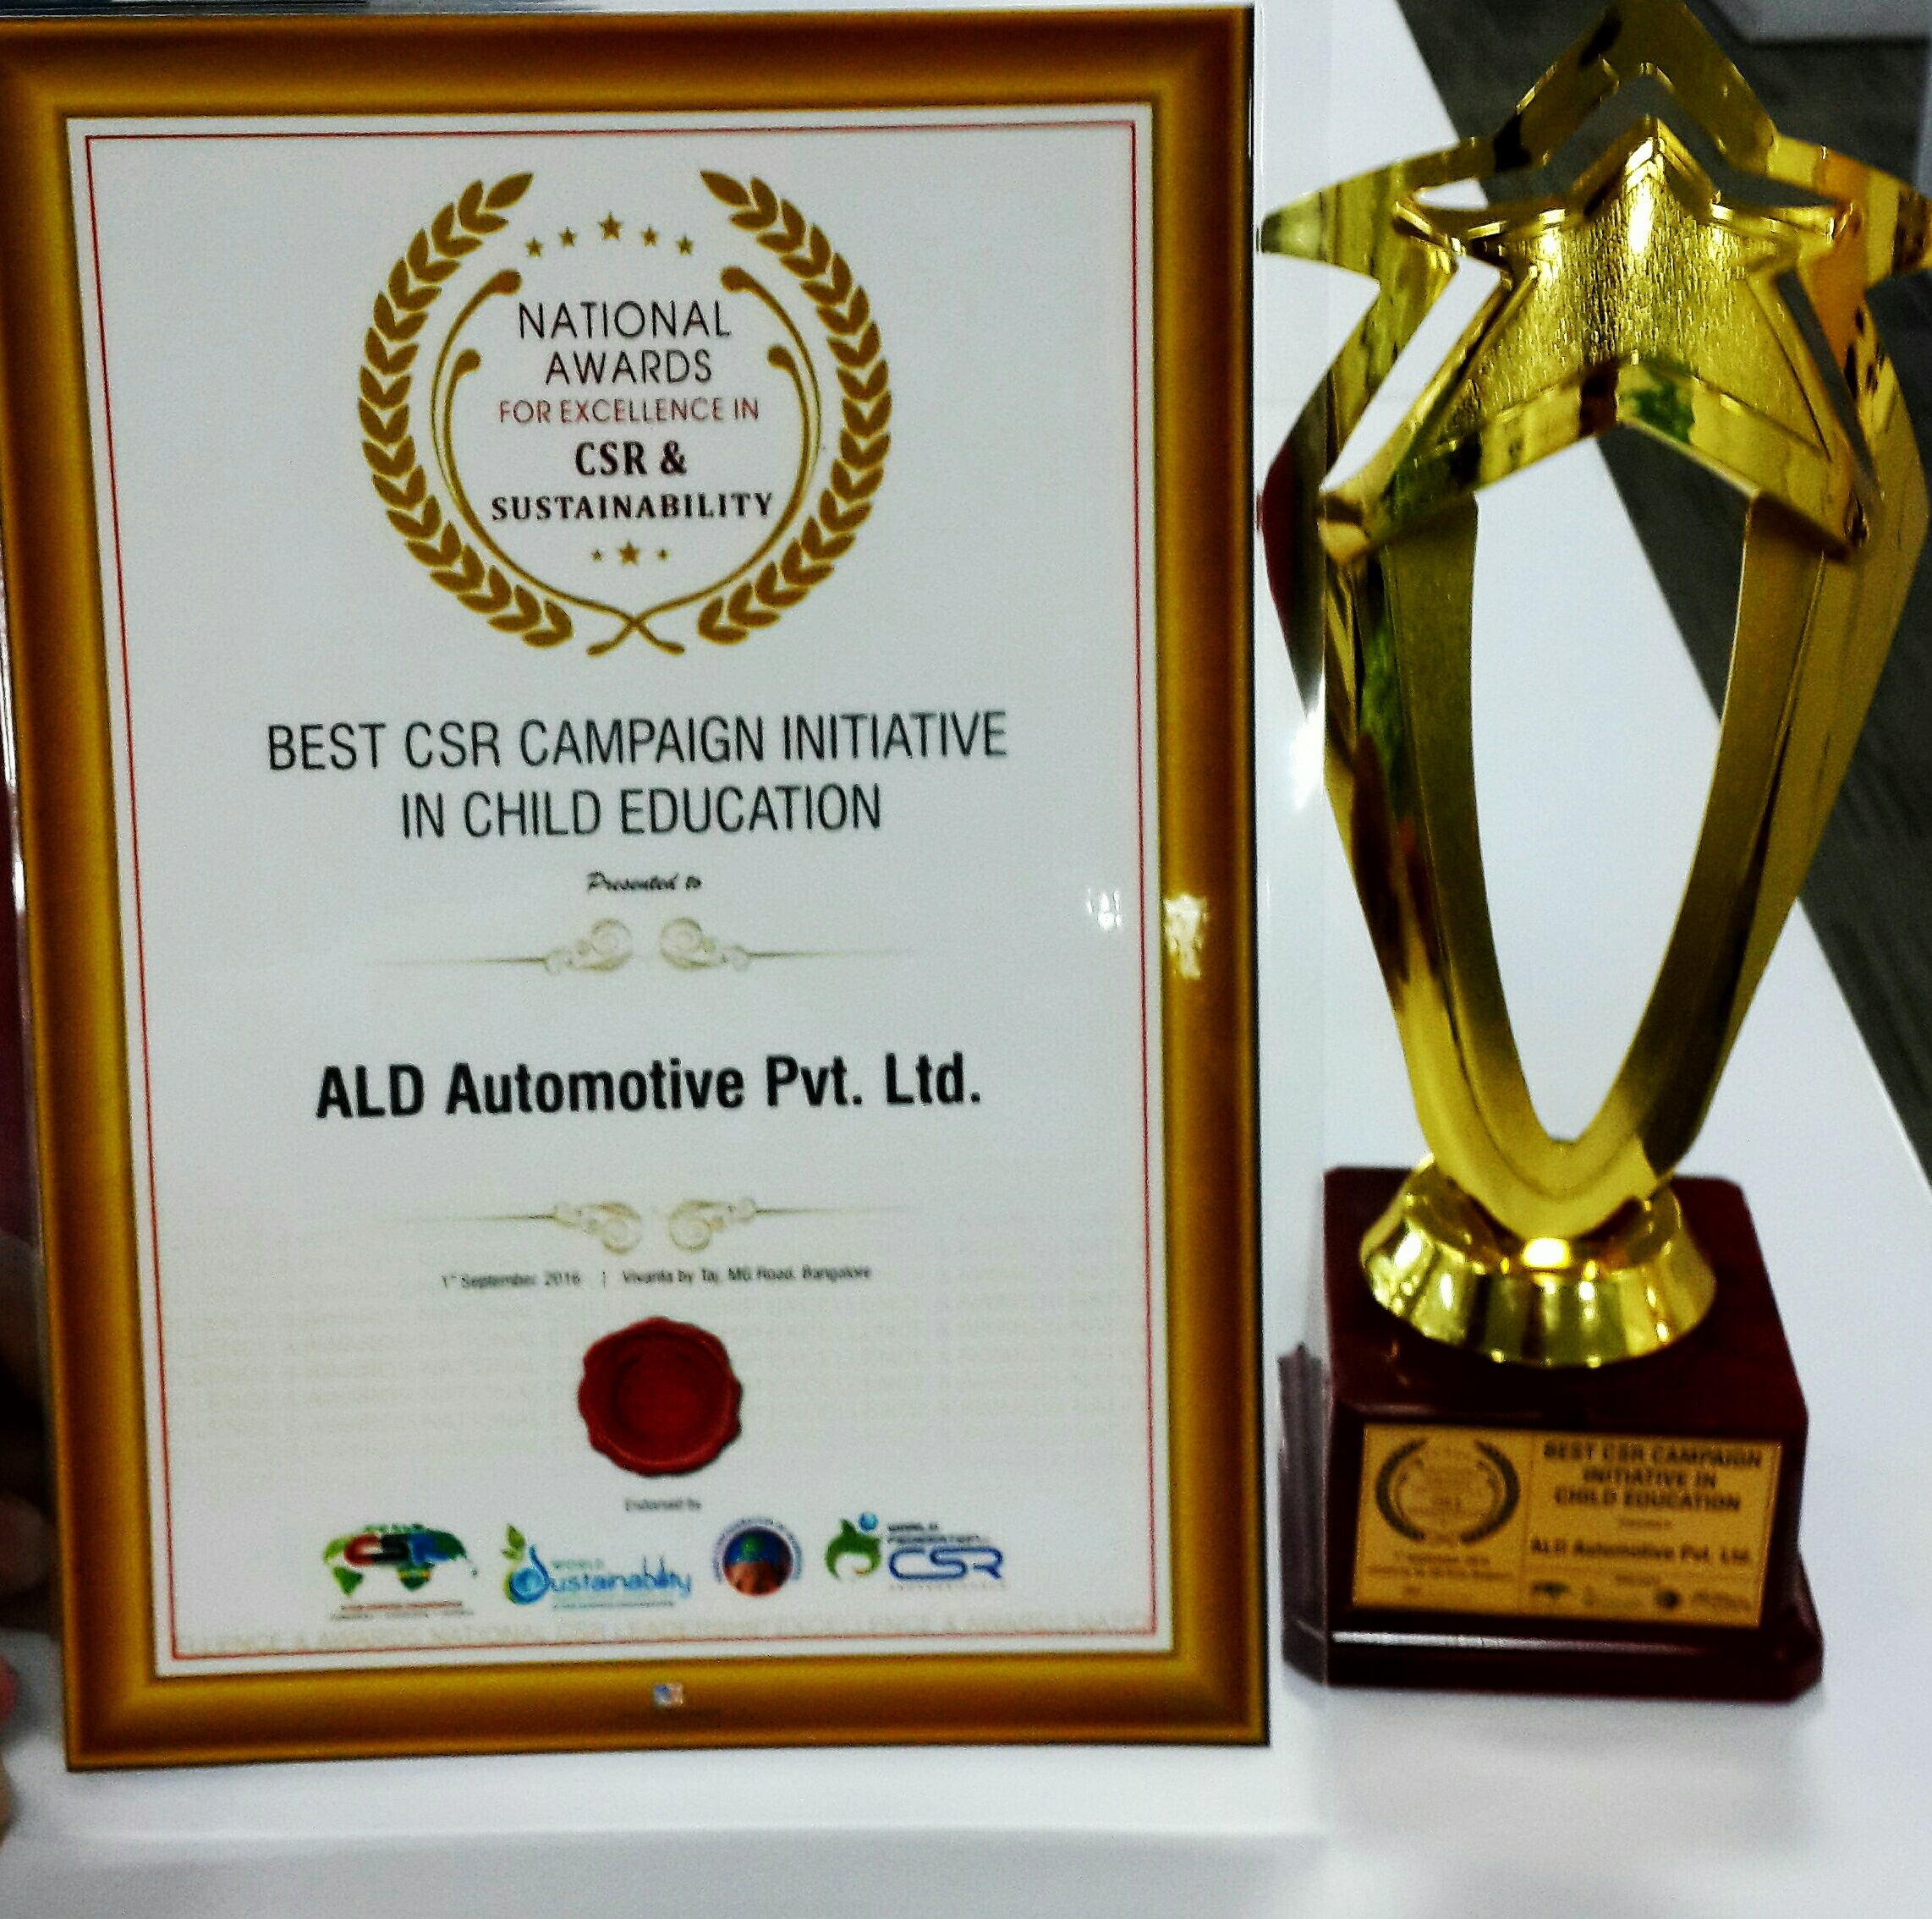 ALD Automotive received 'Best CSR Impact Initiative in Child Education' award